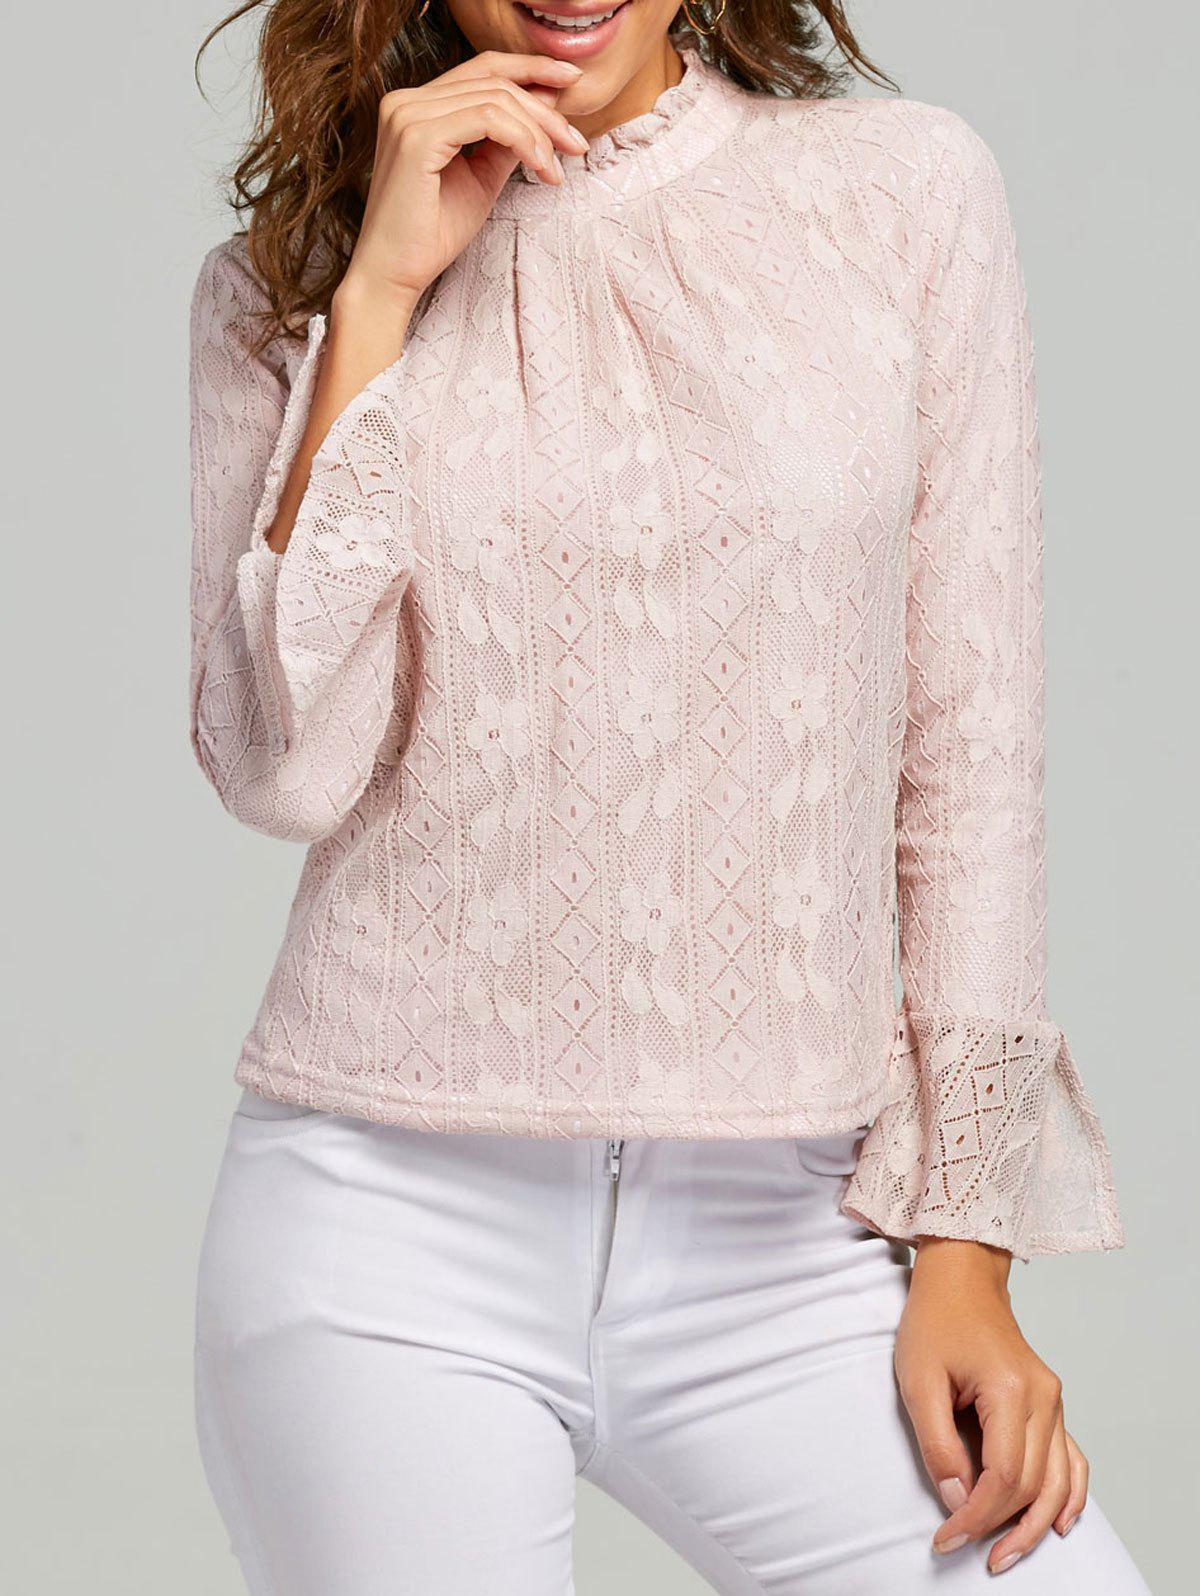 Lace Ruffle Neck Blouse - PINK L